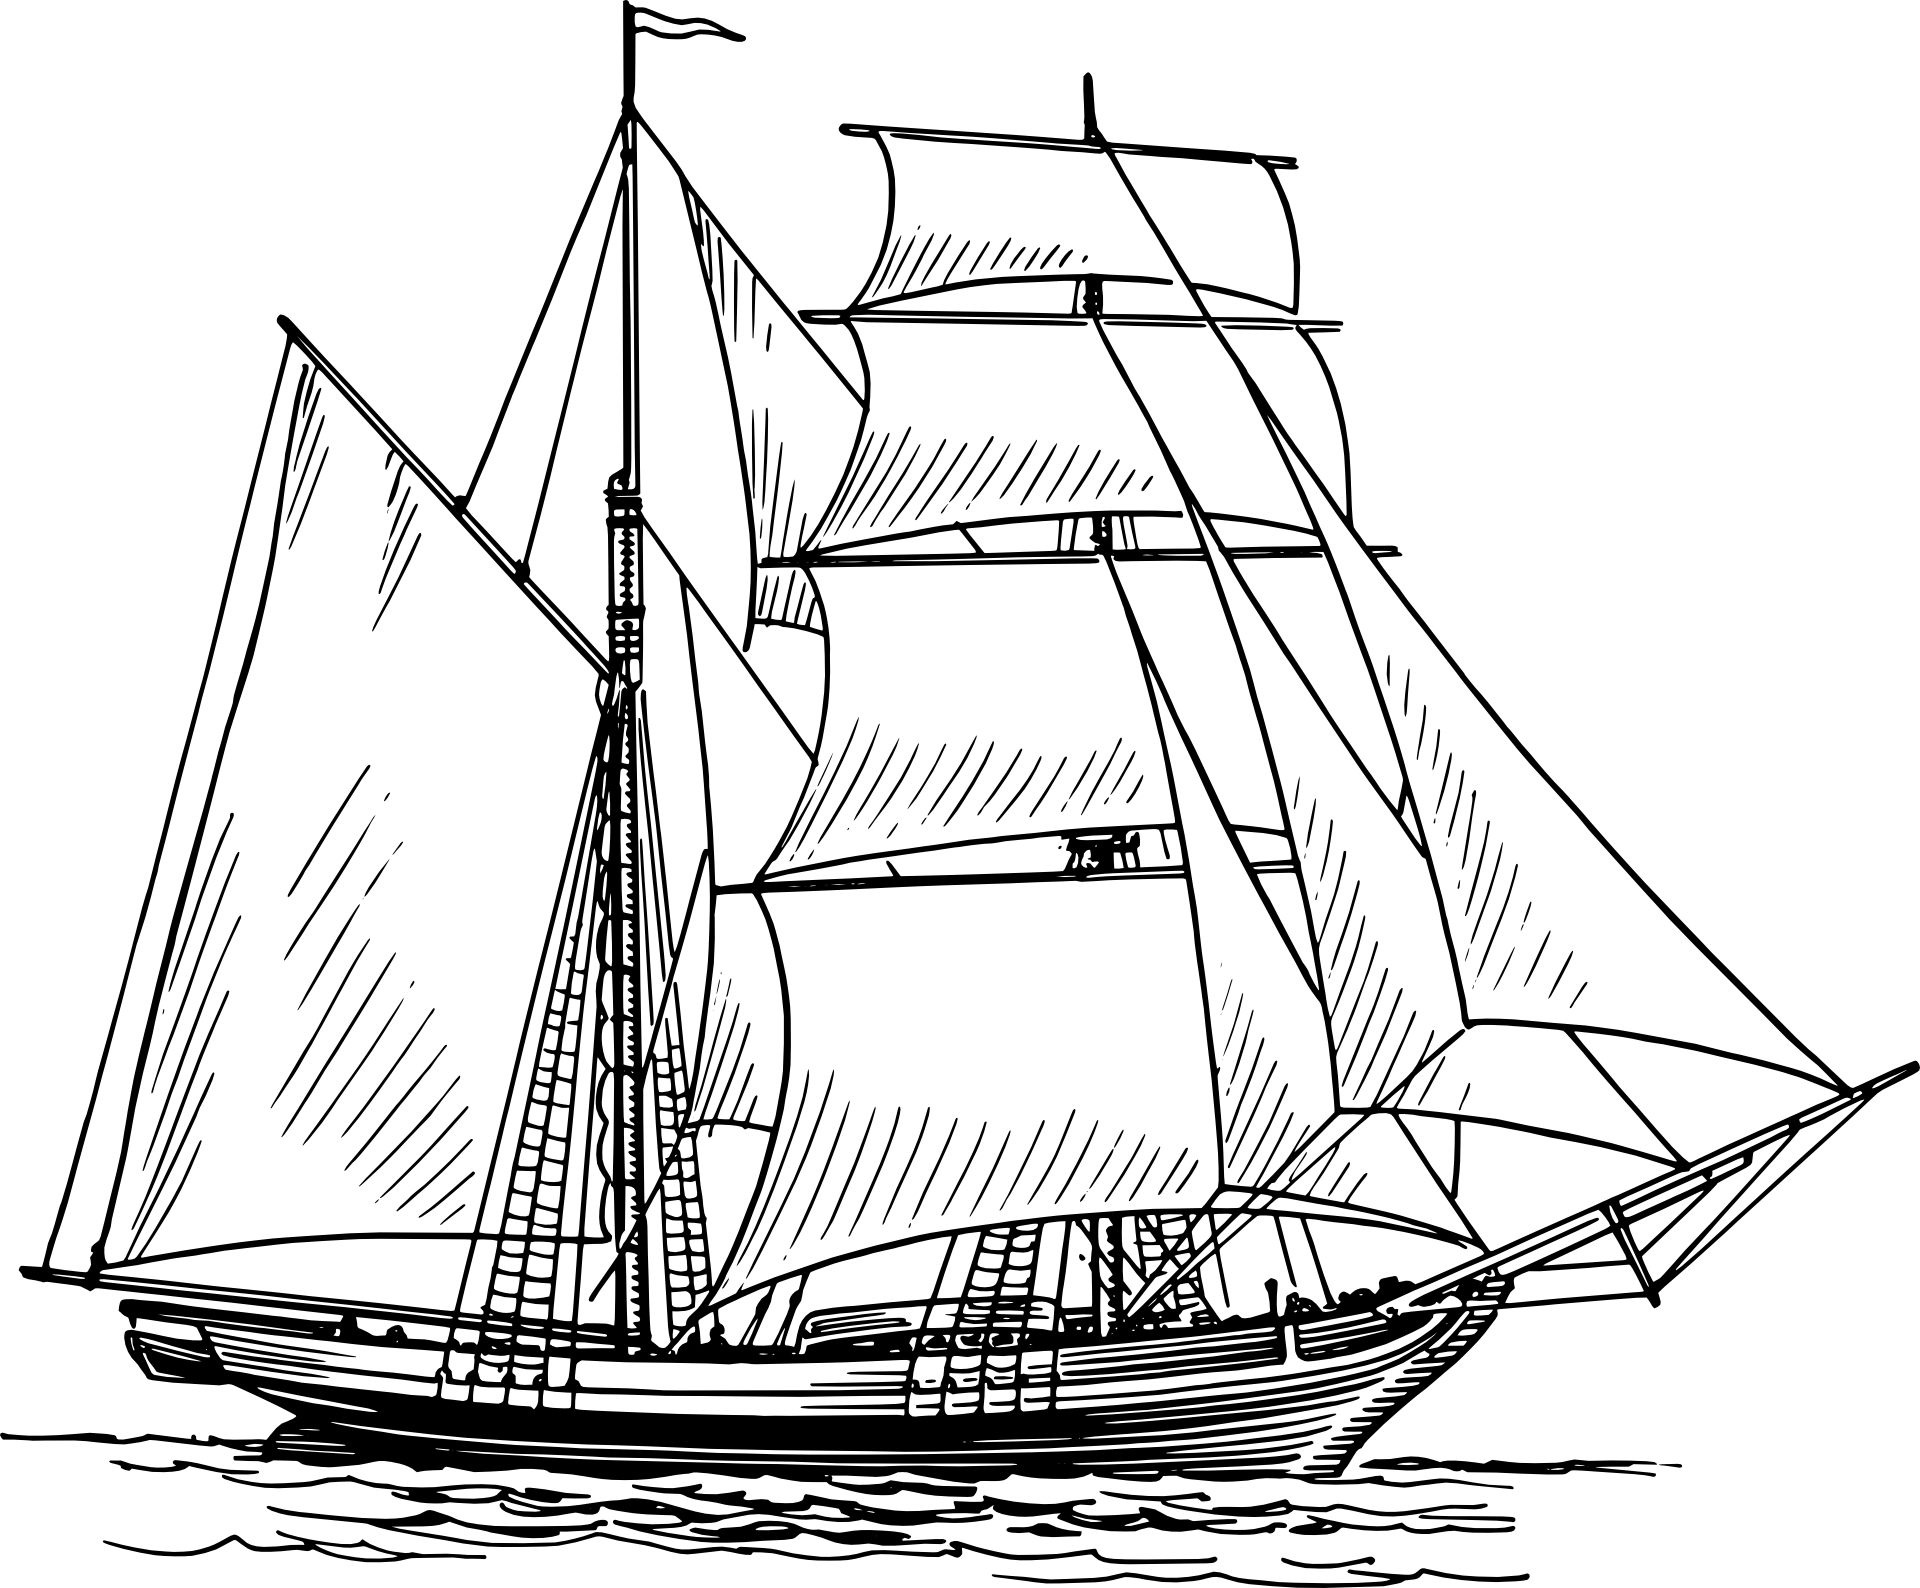 Yacht clipart old boat Boats Coloring and co Pinterest